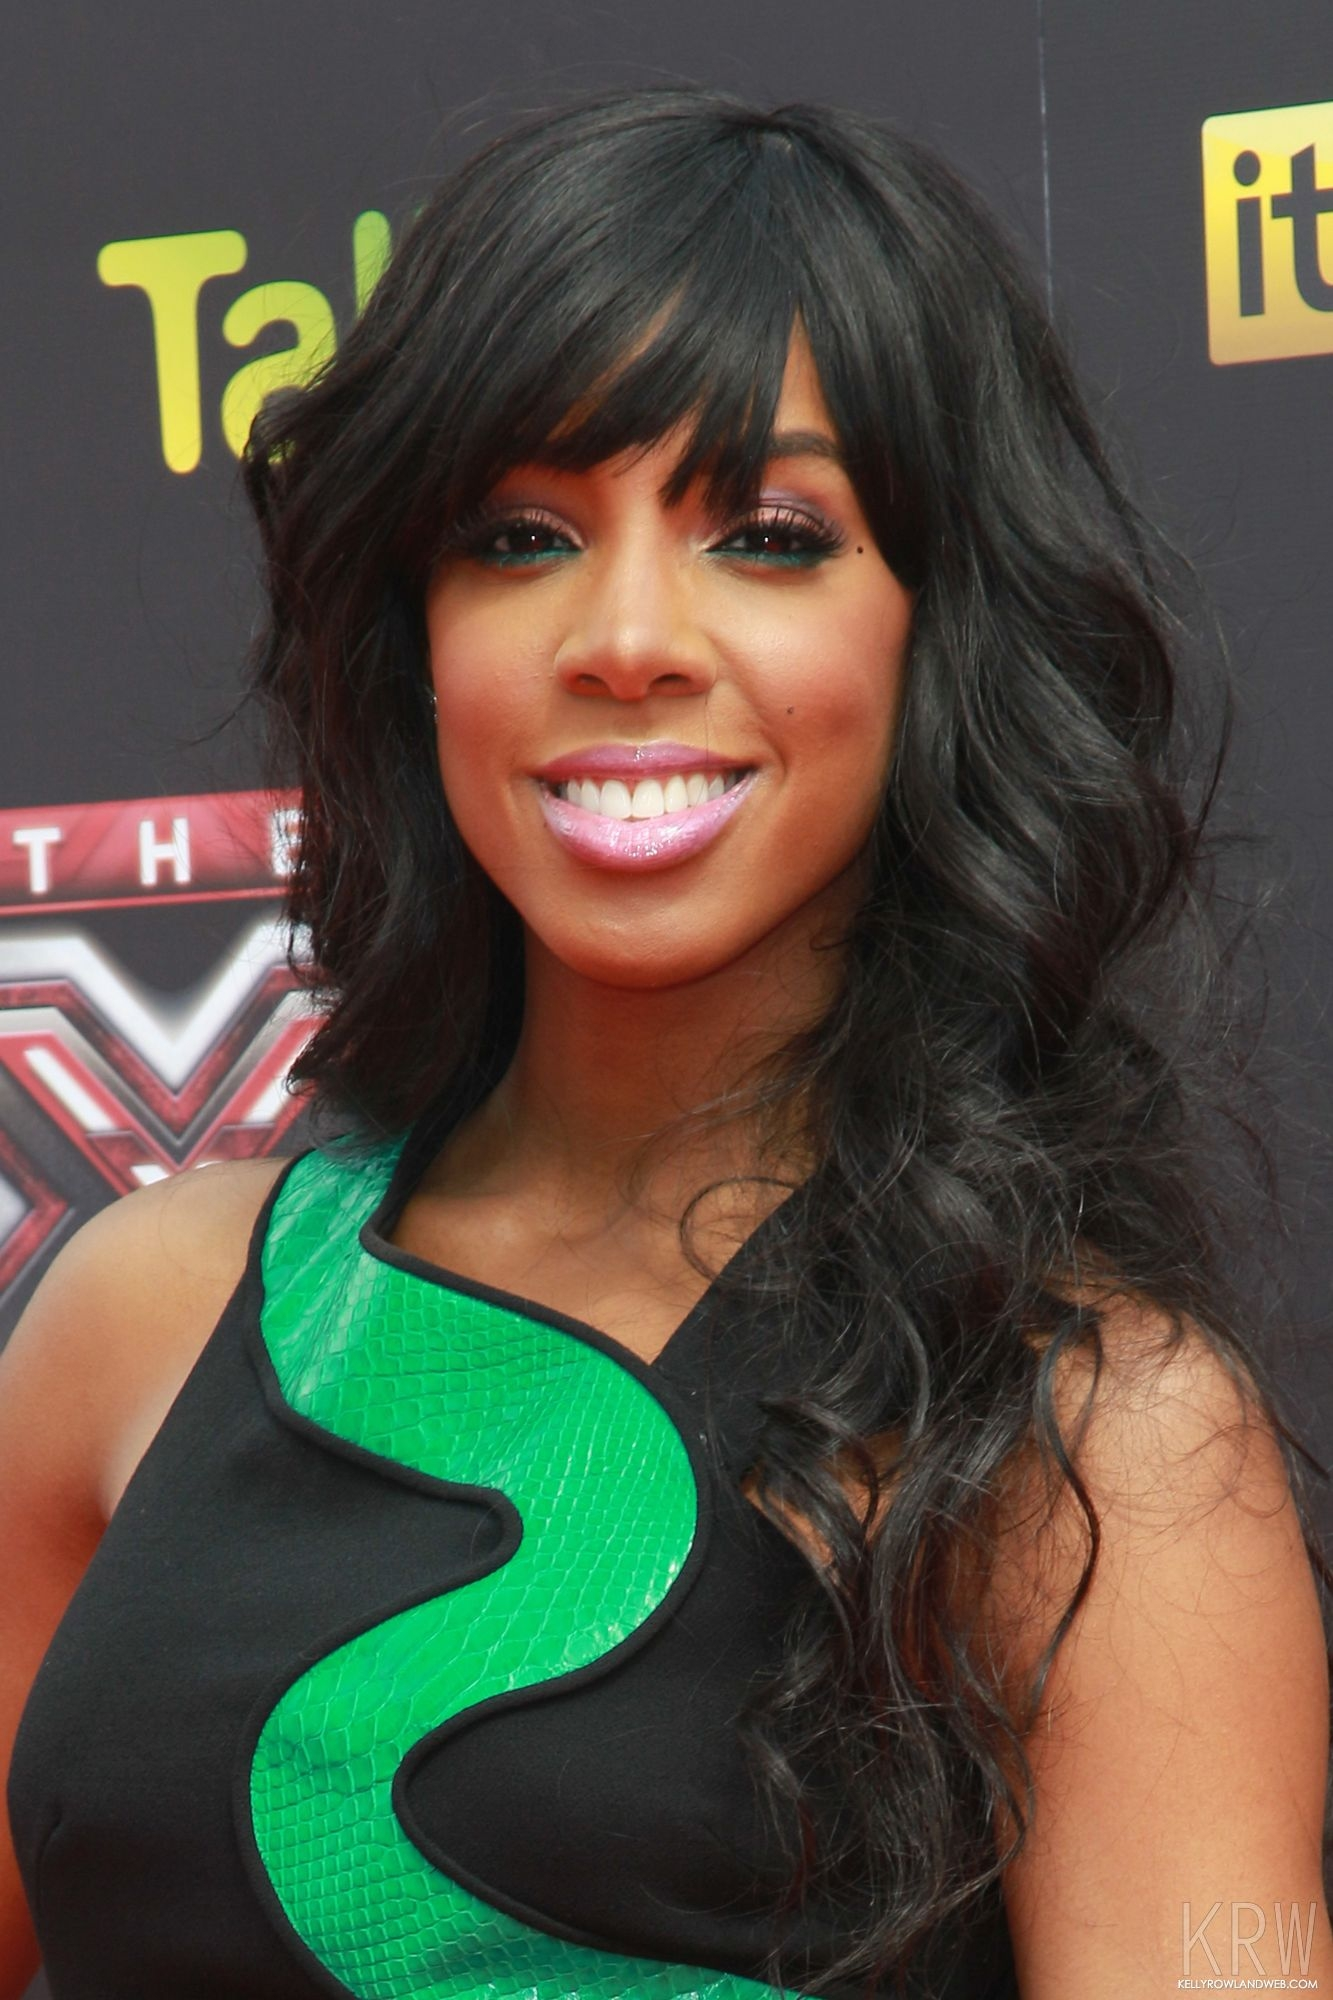 Kelly Rowland - Gallery Photo